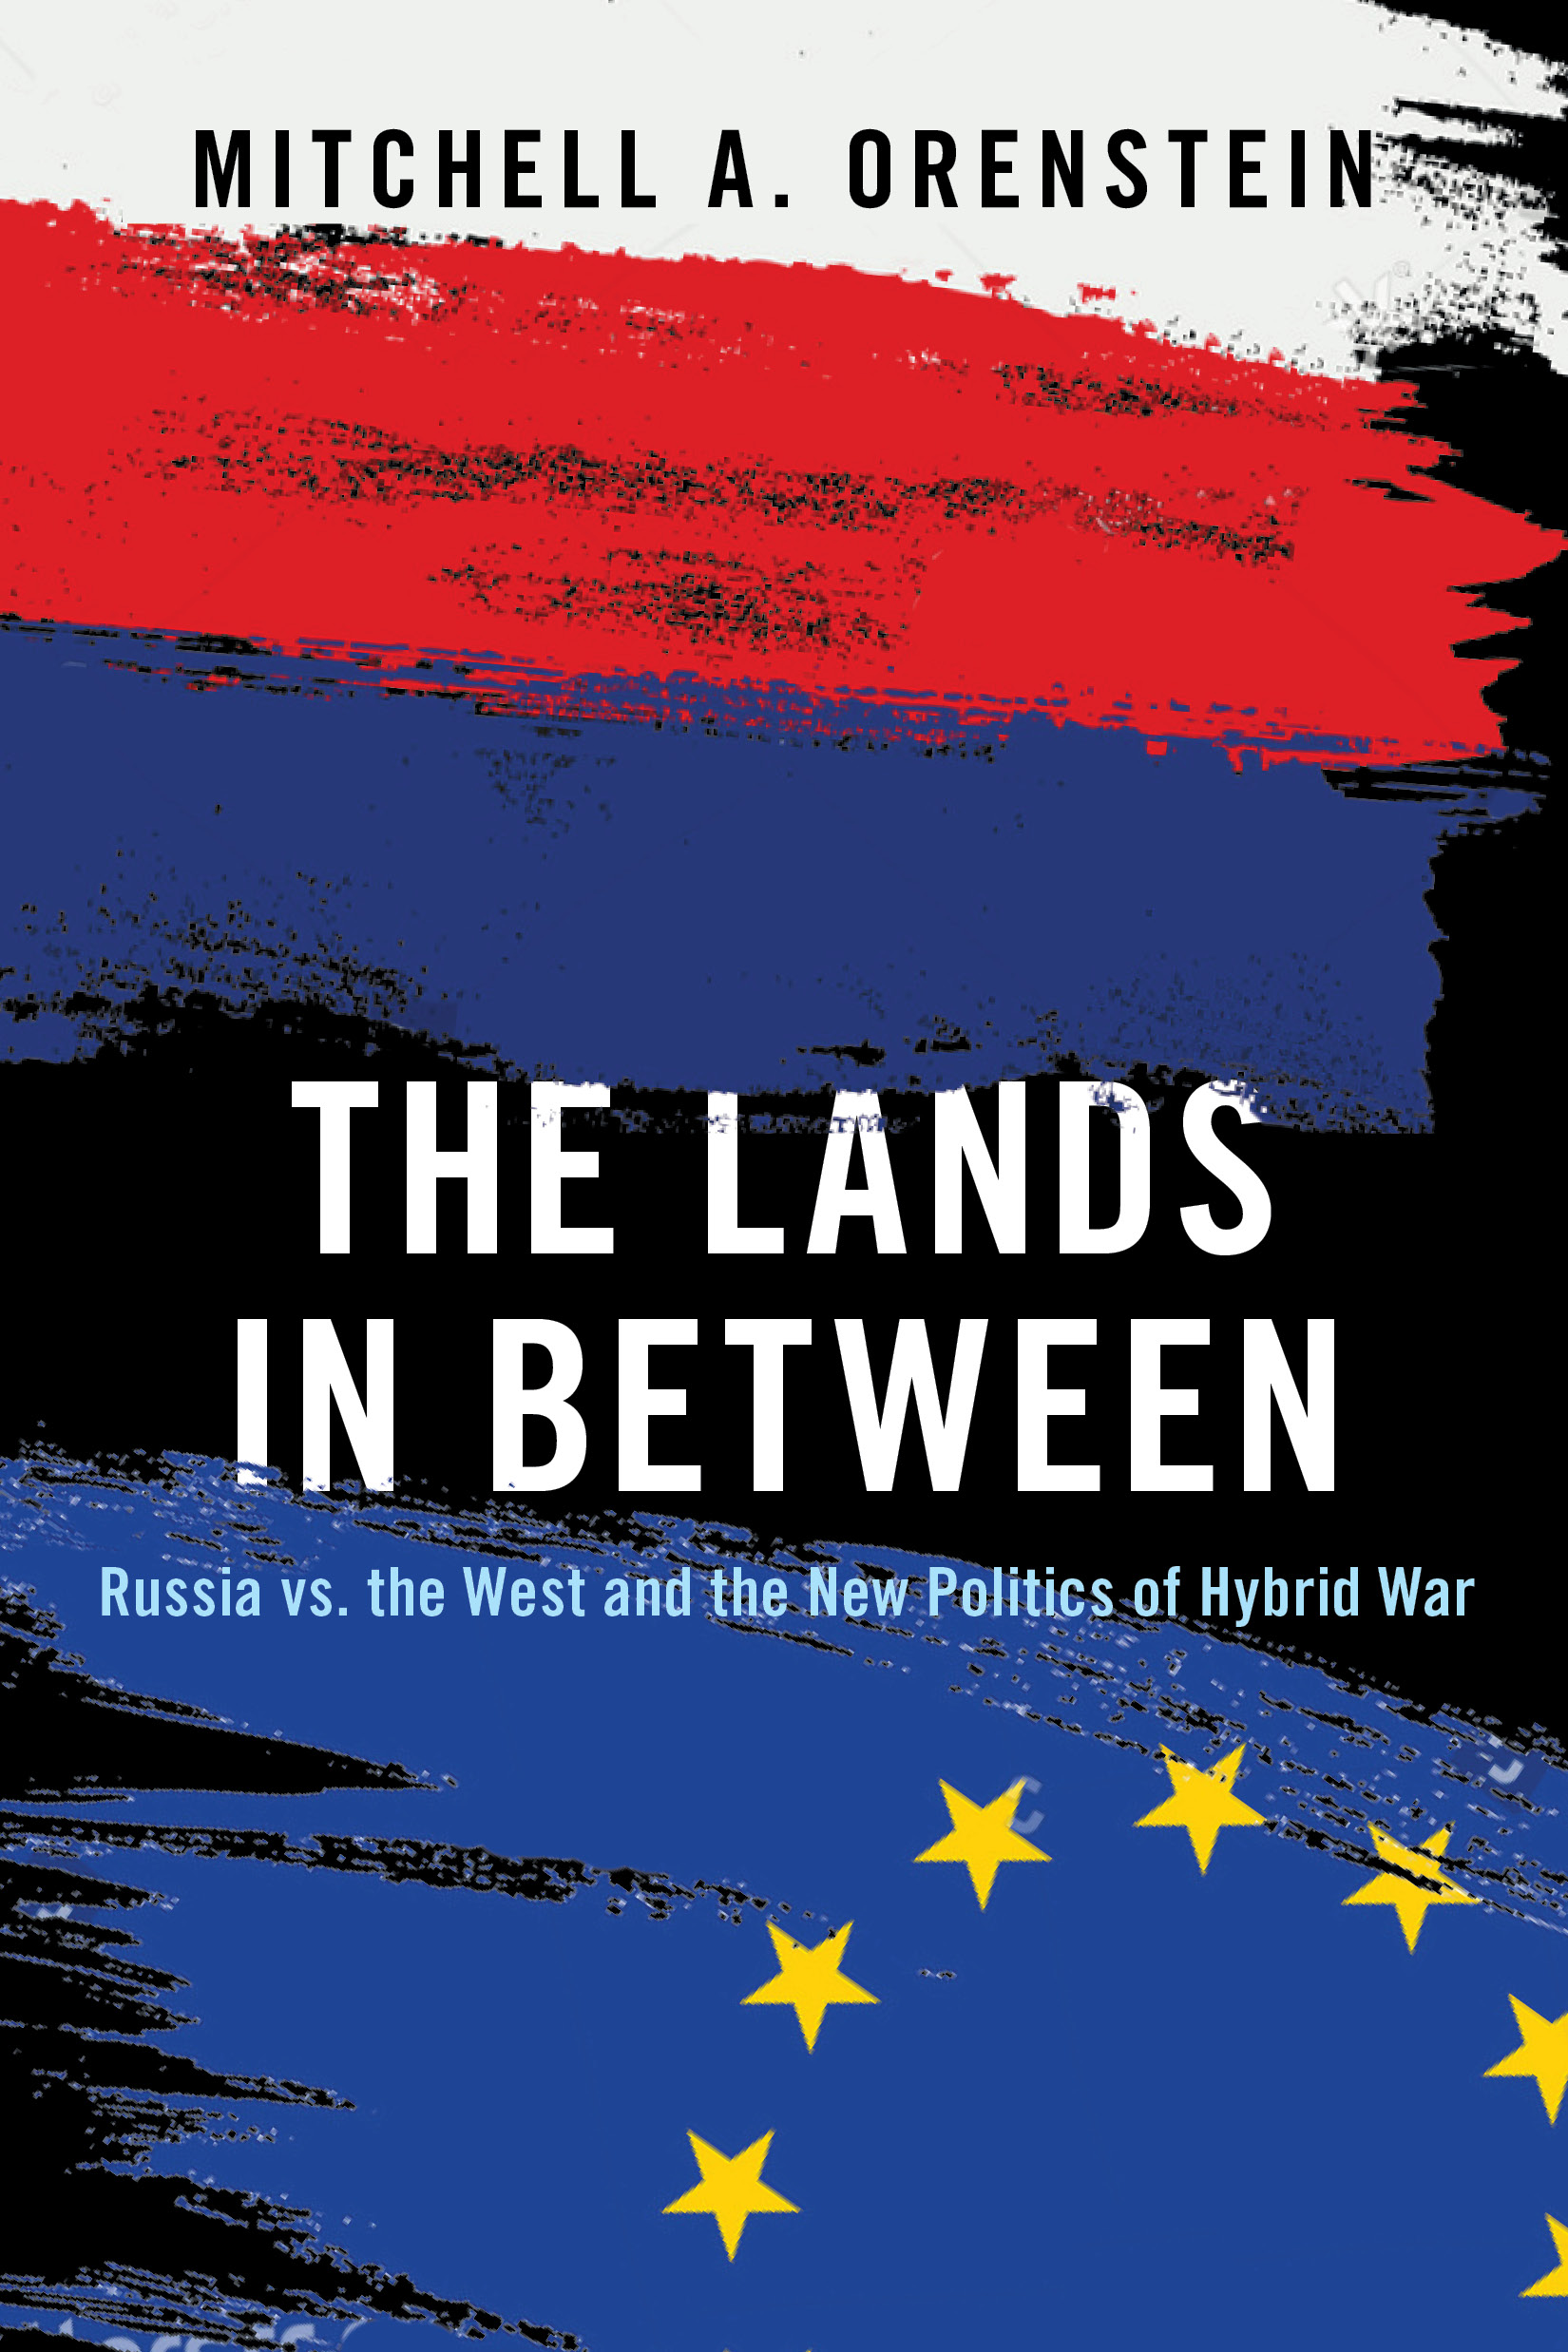 "- ""A slender, astute study of Russia's nefarious modus operandi…clarifies many of the bewildering contradictions that directly affect European and American politics."" -- Kirkus Reviews• Explains why Russia launched its hybrid war on the West and how Western institutions responded• Offers original analysis of how hybrid war affects domestic politics in Central and Eastern Europe, Europe and North America• Explores the paradox that in states divided by hybrid war, leading politicians often seek to profit from both sides"